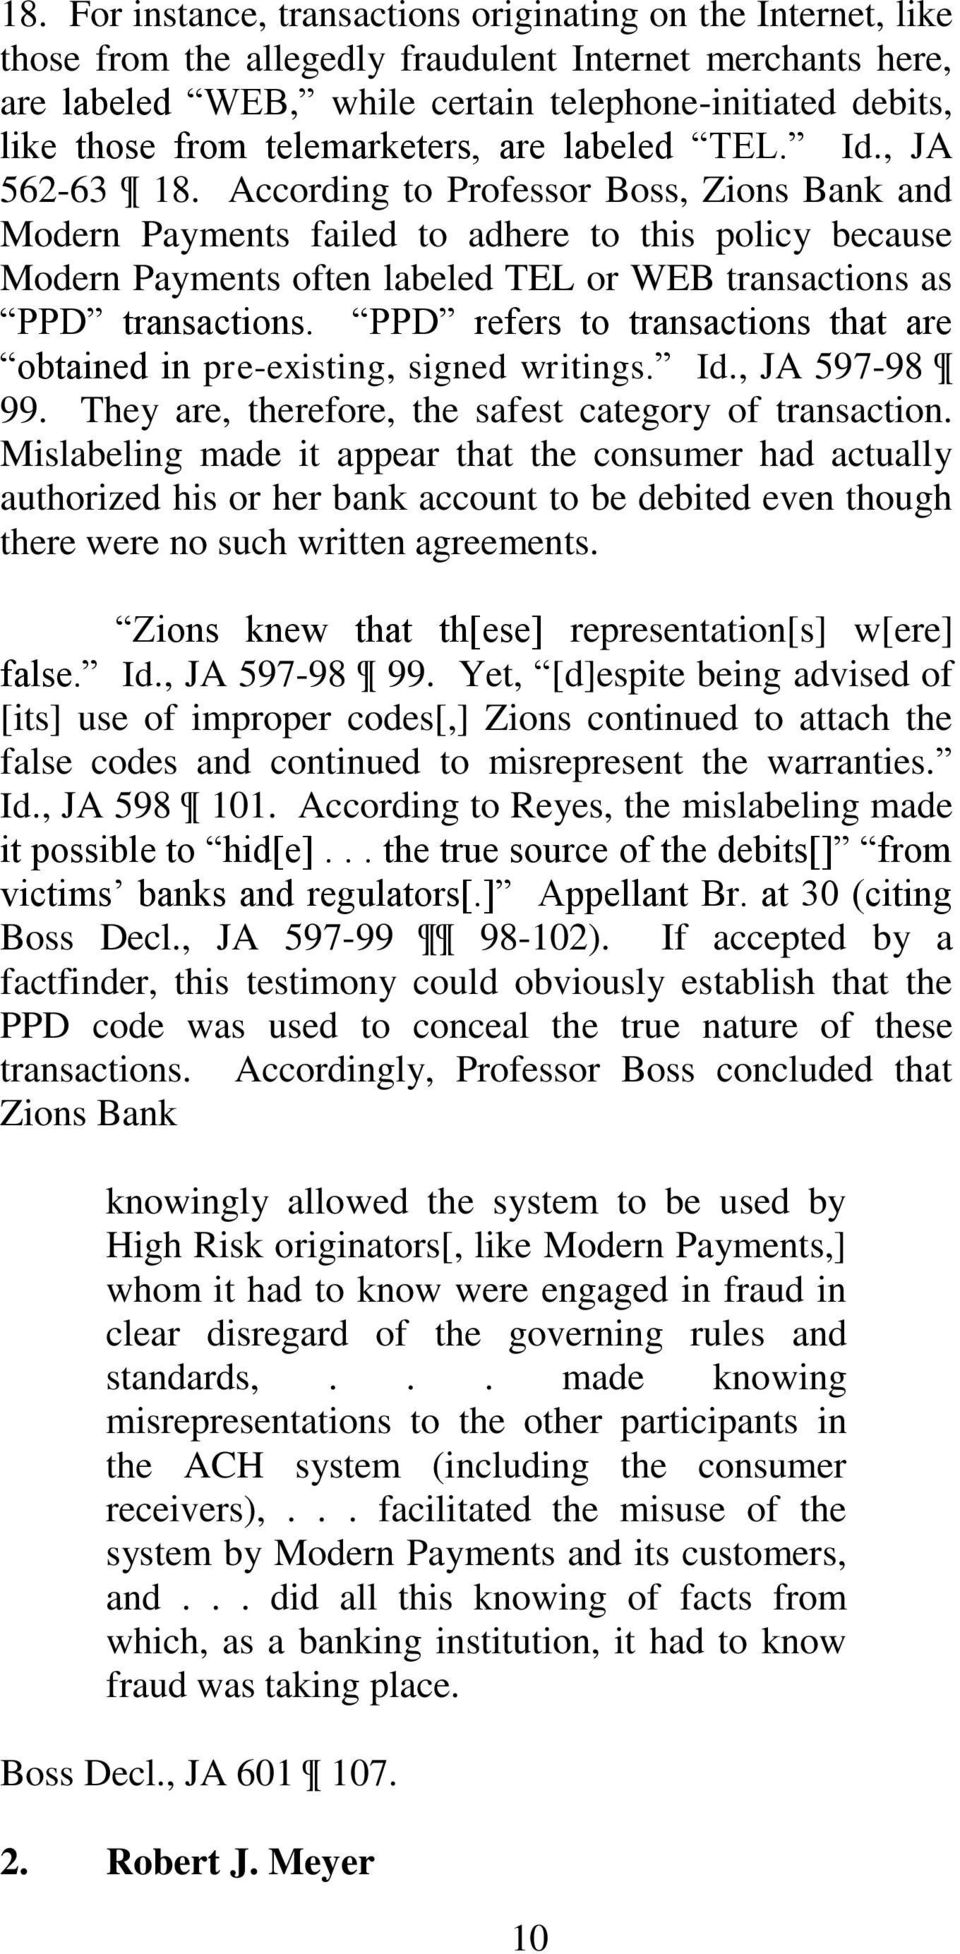 According to Professor Boss, Zions Bank and Modern Payments failed to adhere to this policy because Modern Payments often labeled TEL or WEB transactions as PPD transactions.